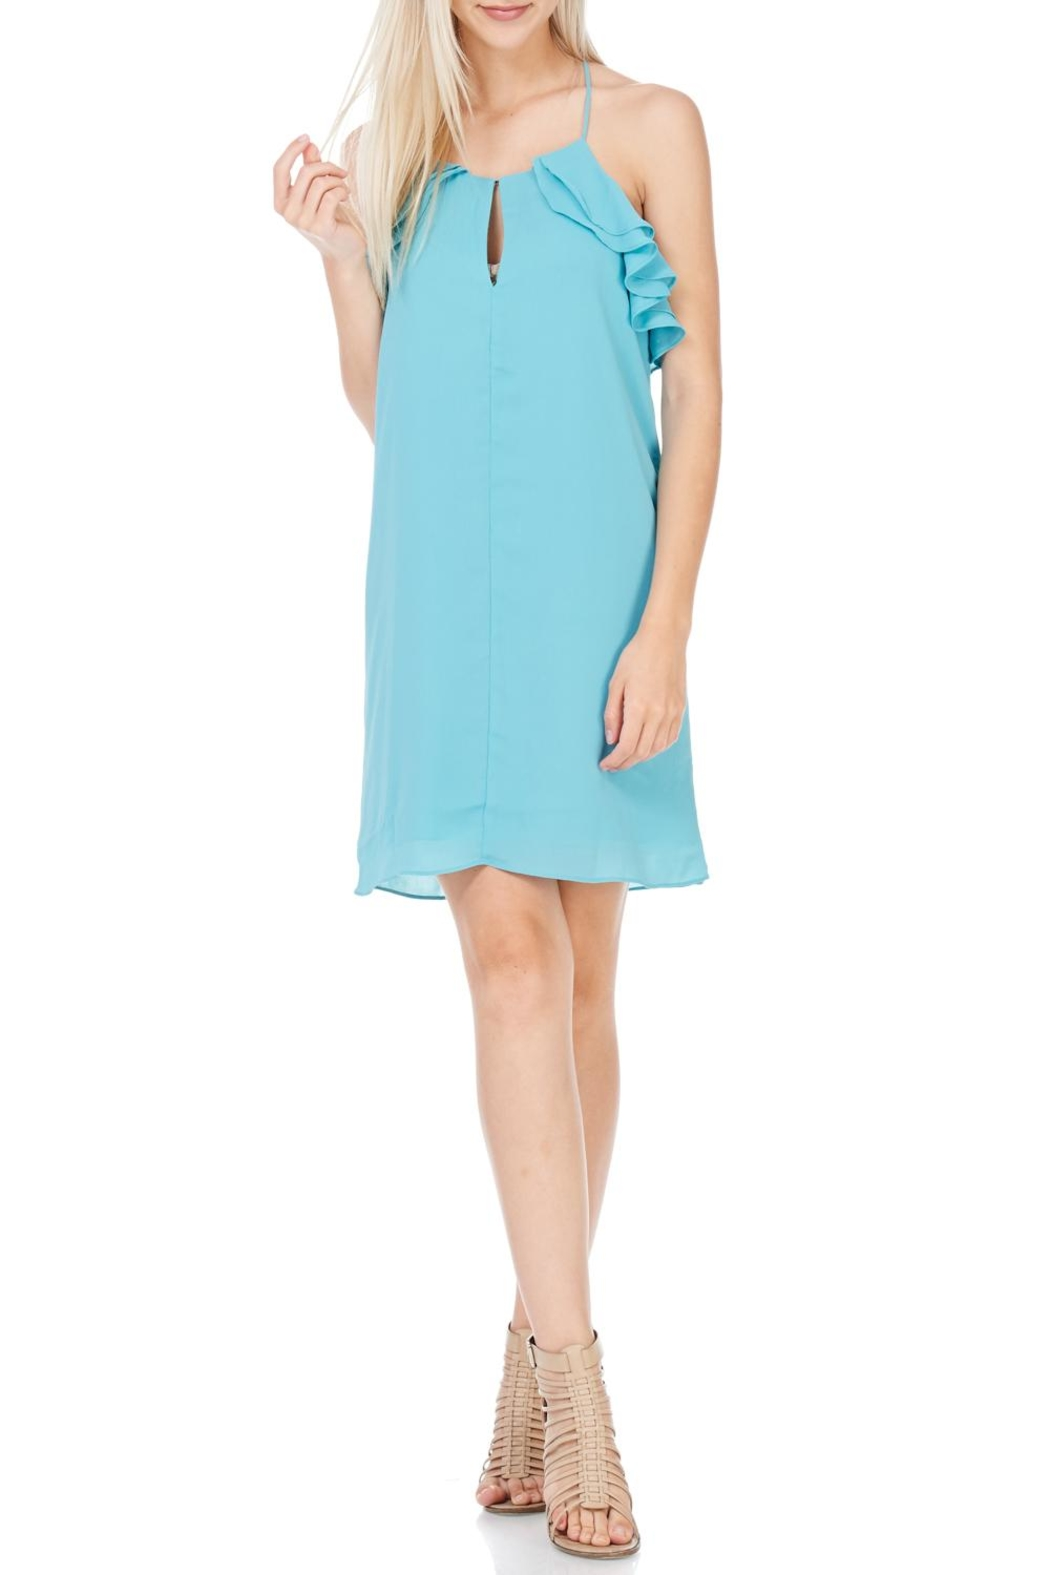 Everly Aqua Racerback Dress - Front Cropped Image